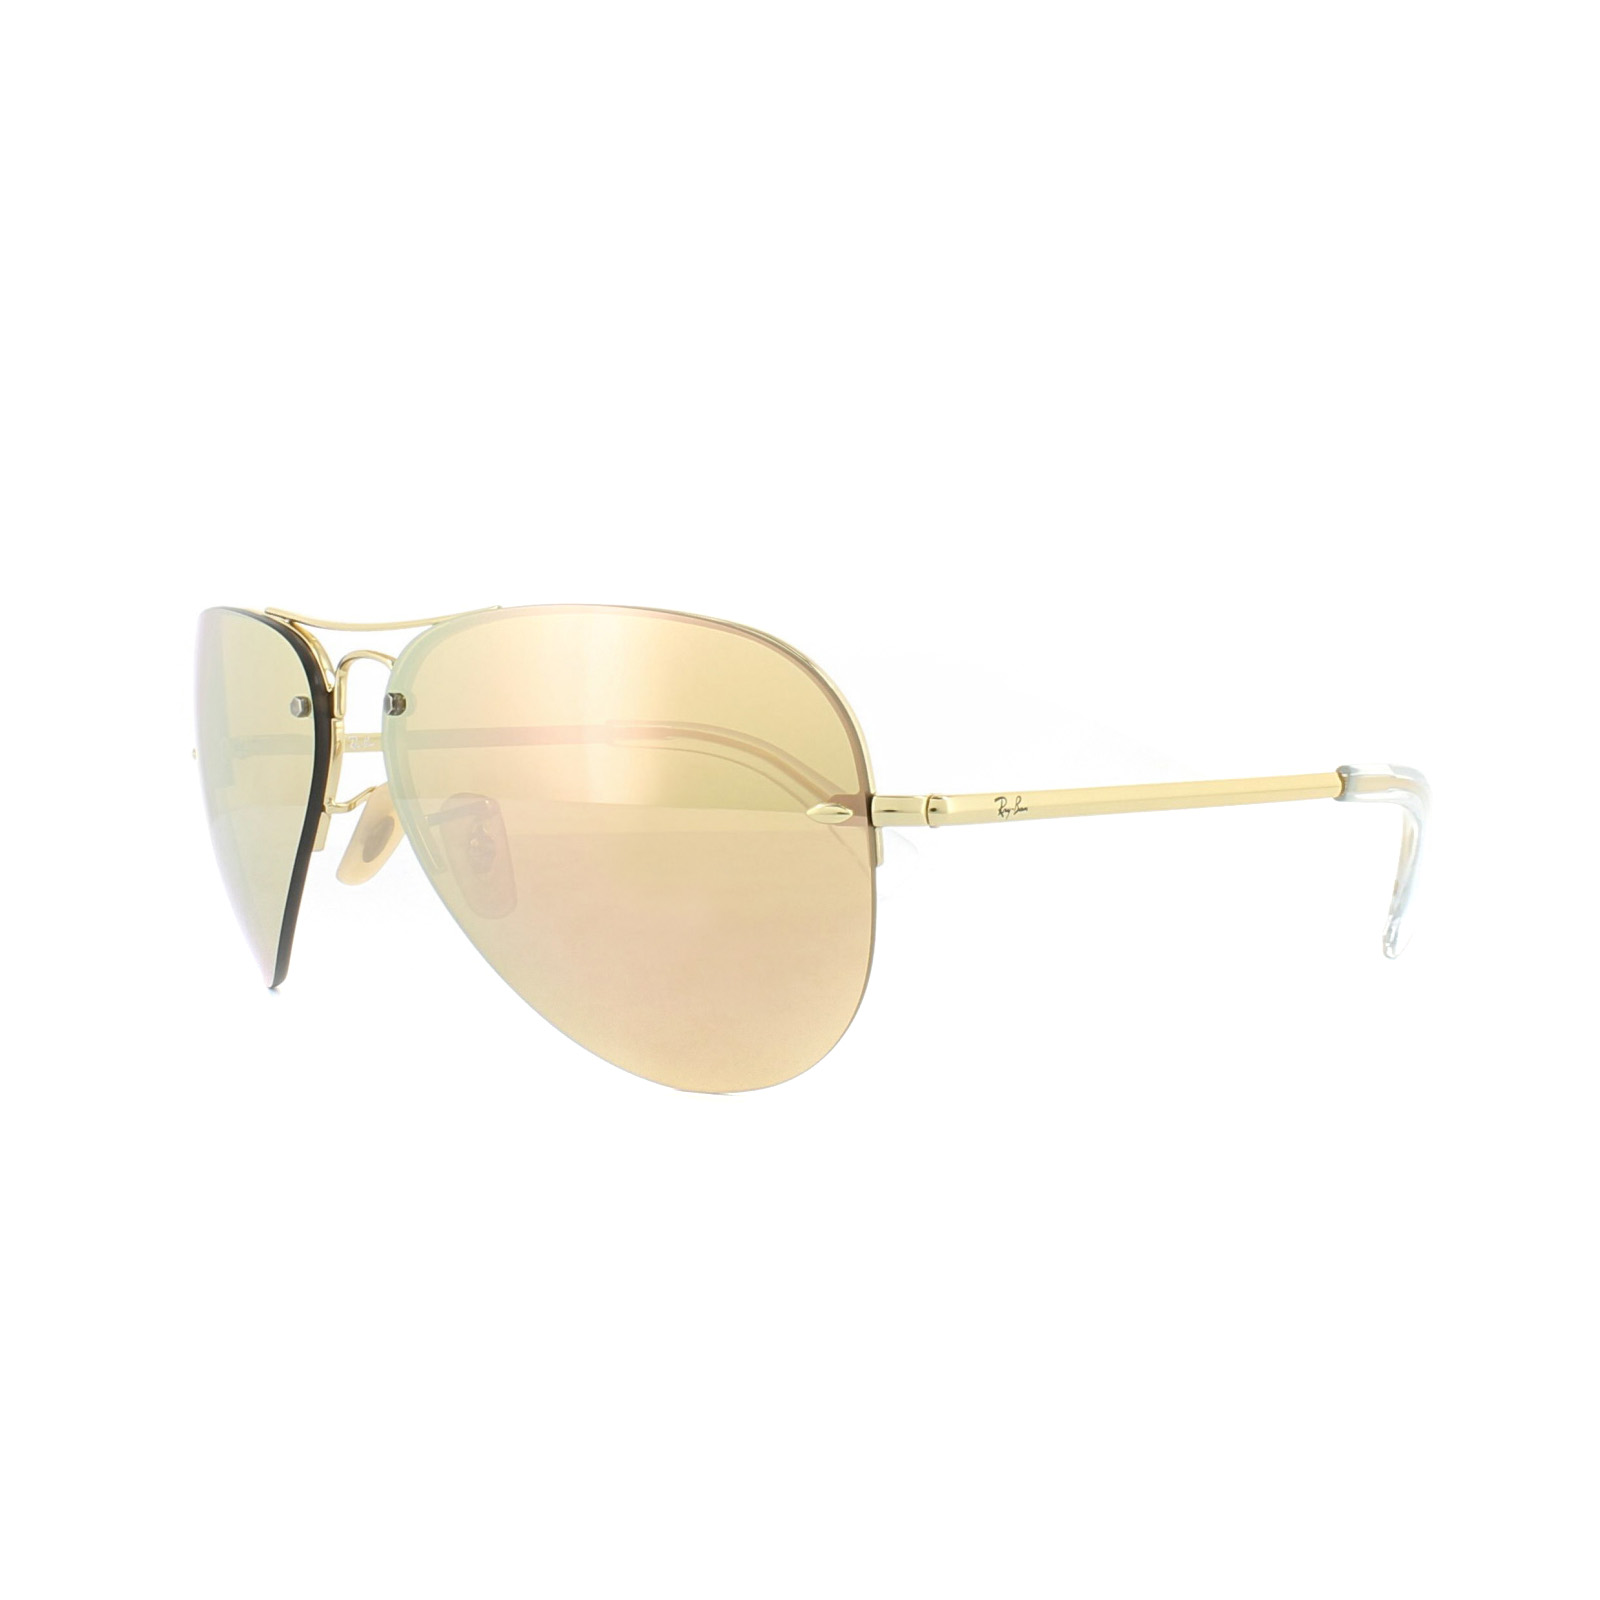 Ray-Ban Sunglasses 3449 001 2Y Gold Copper Mirror 8053672508093   eBay 1e108740ac